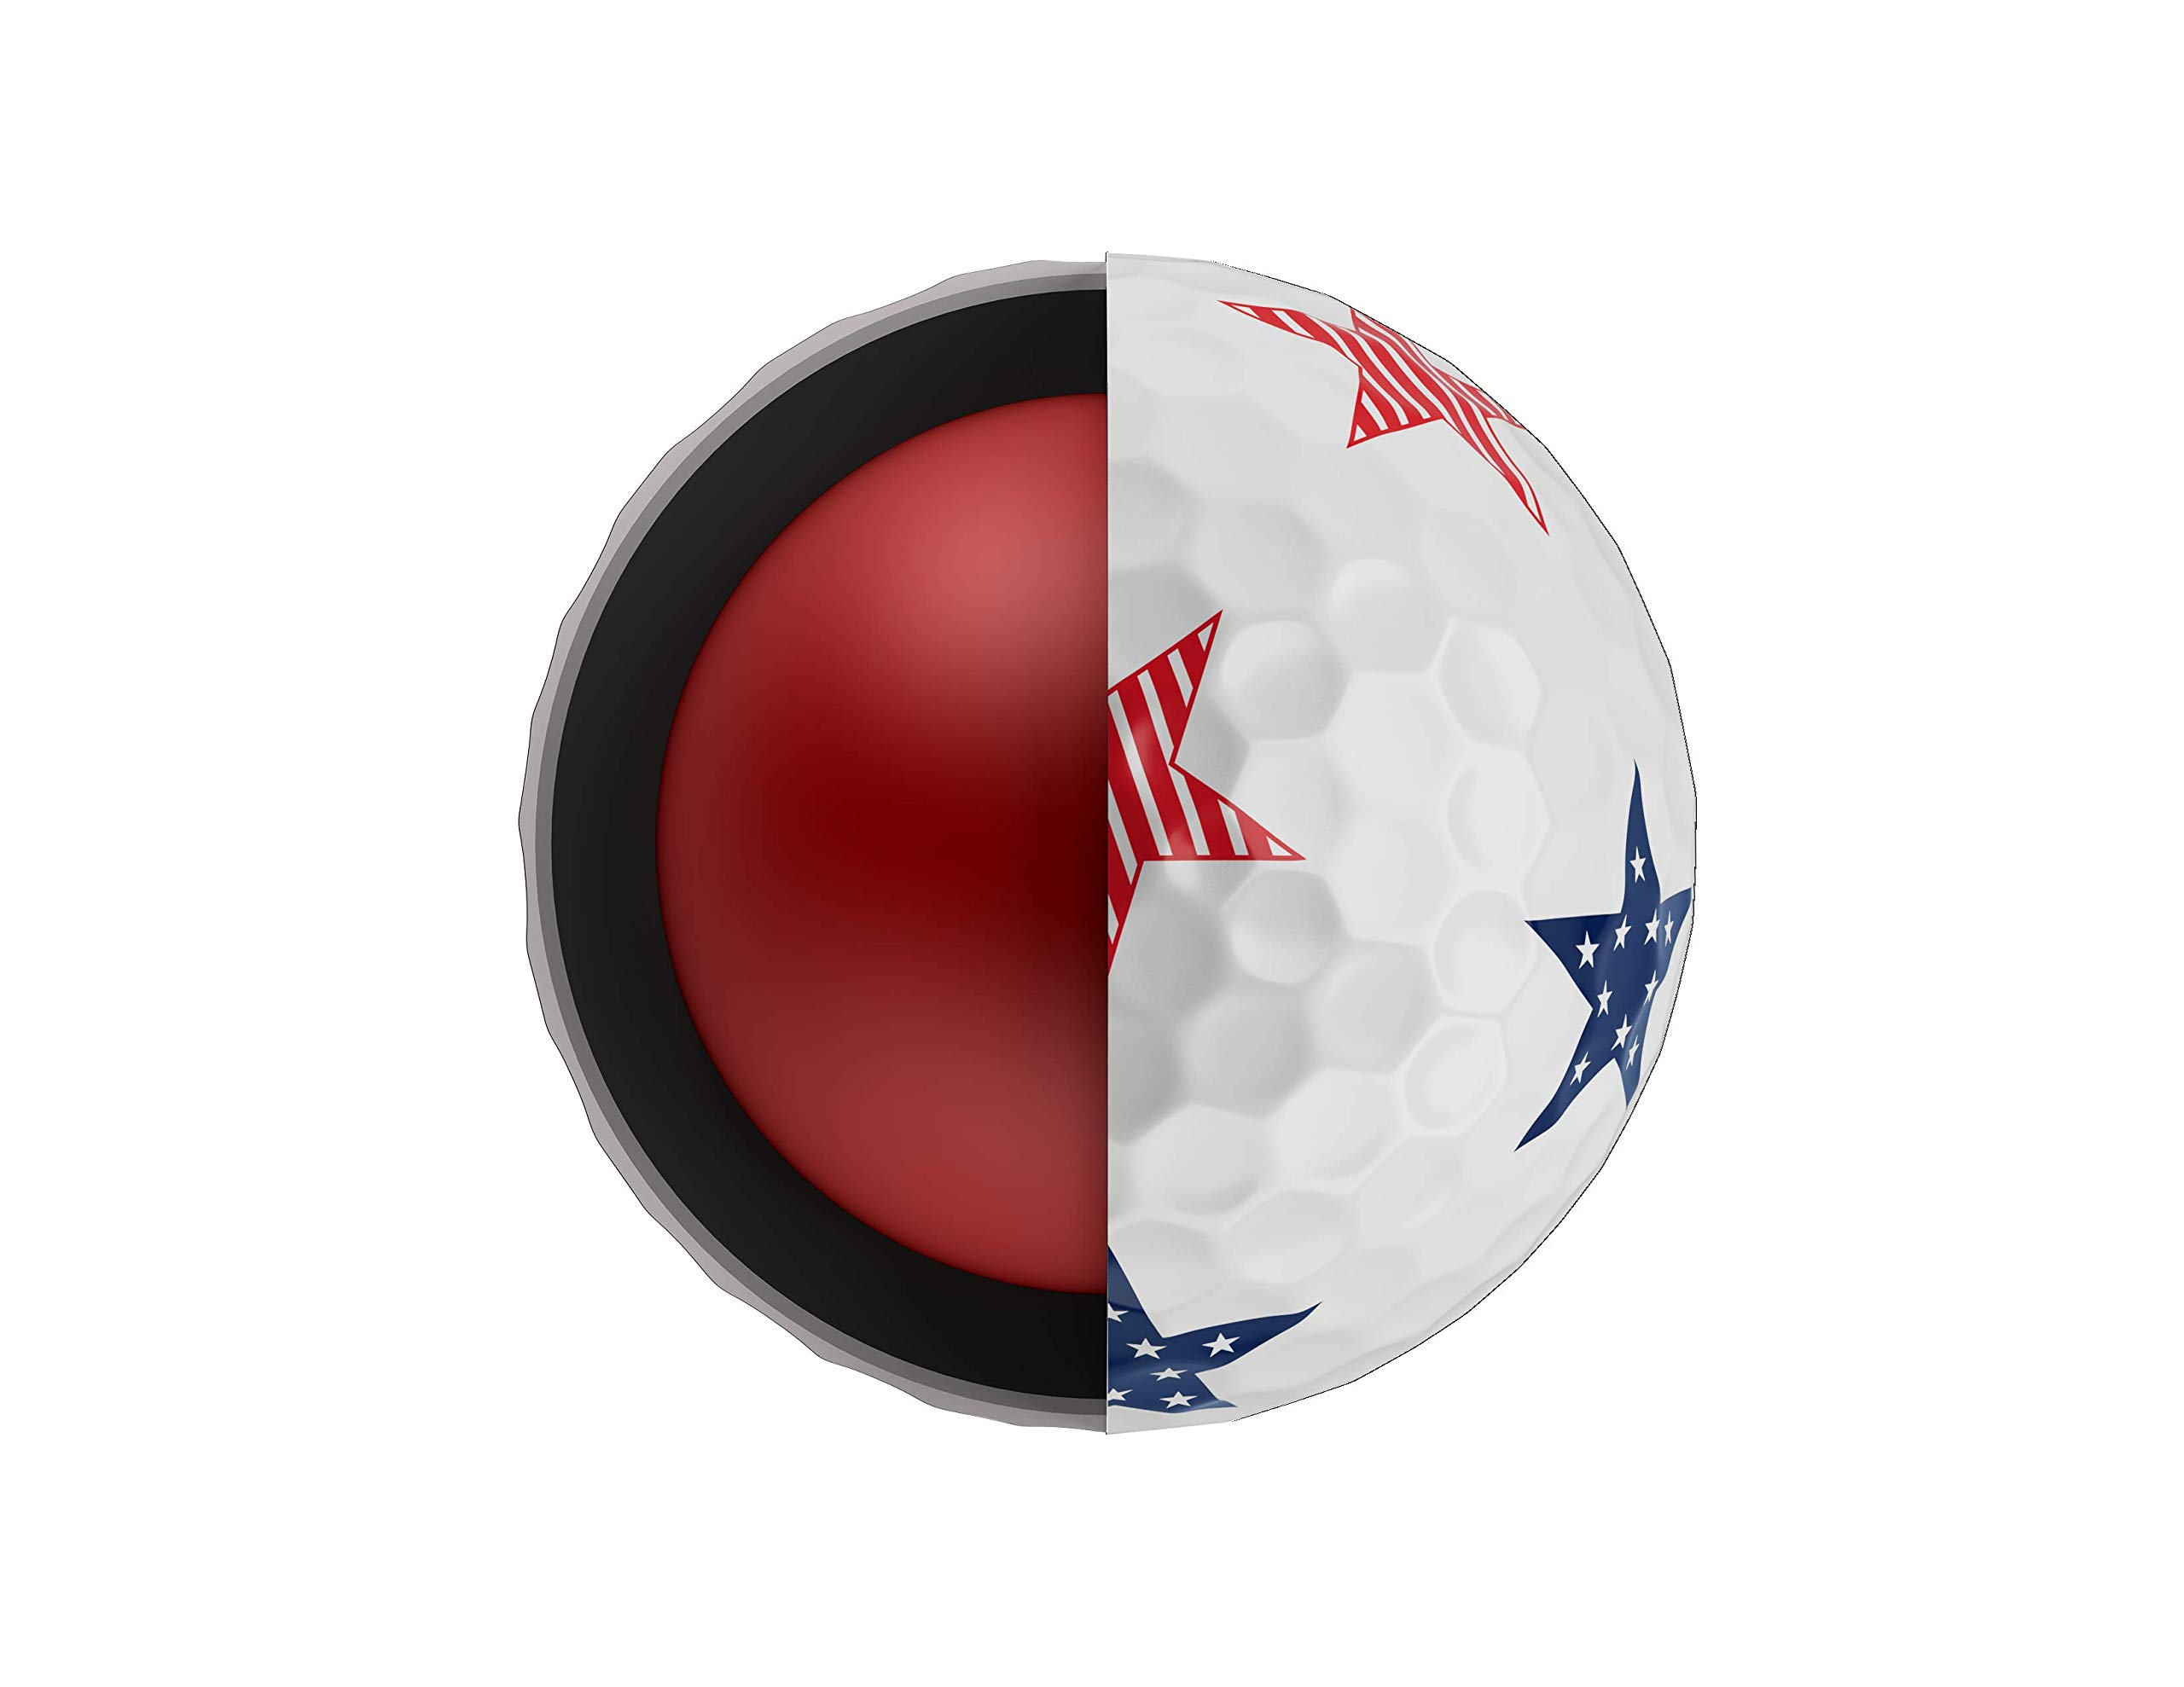 Callaway Golf Chrome Soft Truvis Golf Balls, (One Dozen), Stars and Stripes (Limited Edition) by Callaway (Image #6)